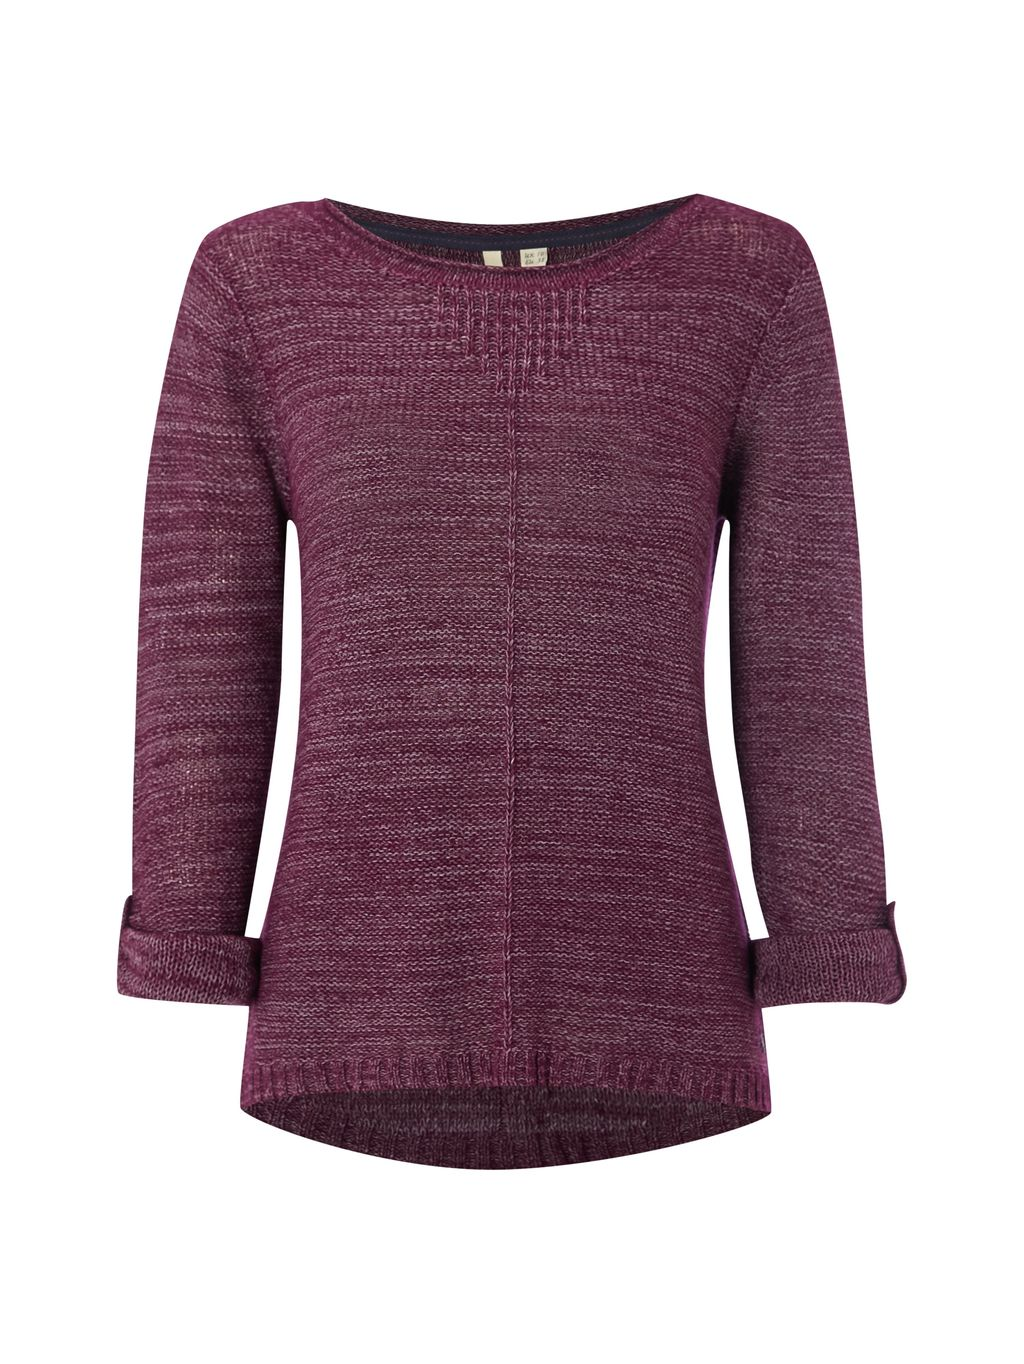 Vacay Jumper, Purple - neckline: round neck; pattern: plain; style: standard; predominant colour: purple; occasions: casual, creative work; length: standard; fibres: nylon - mix; fit: standard fit; sleeve length: 3/4 length; sleeve style: standard; texture group: knits/crochet; pattern type: knitted - fine stitch; season: s/s 2016; wardrobe: highlight